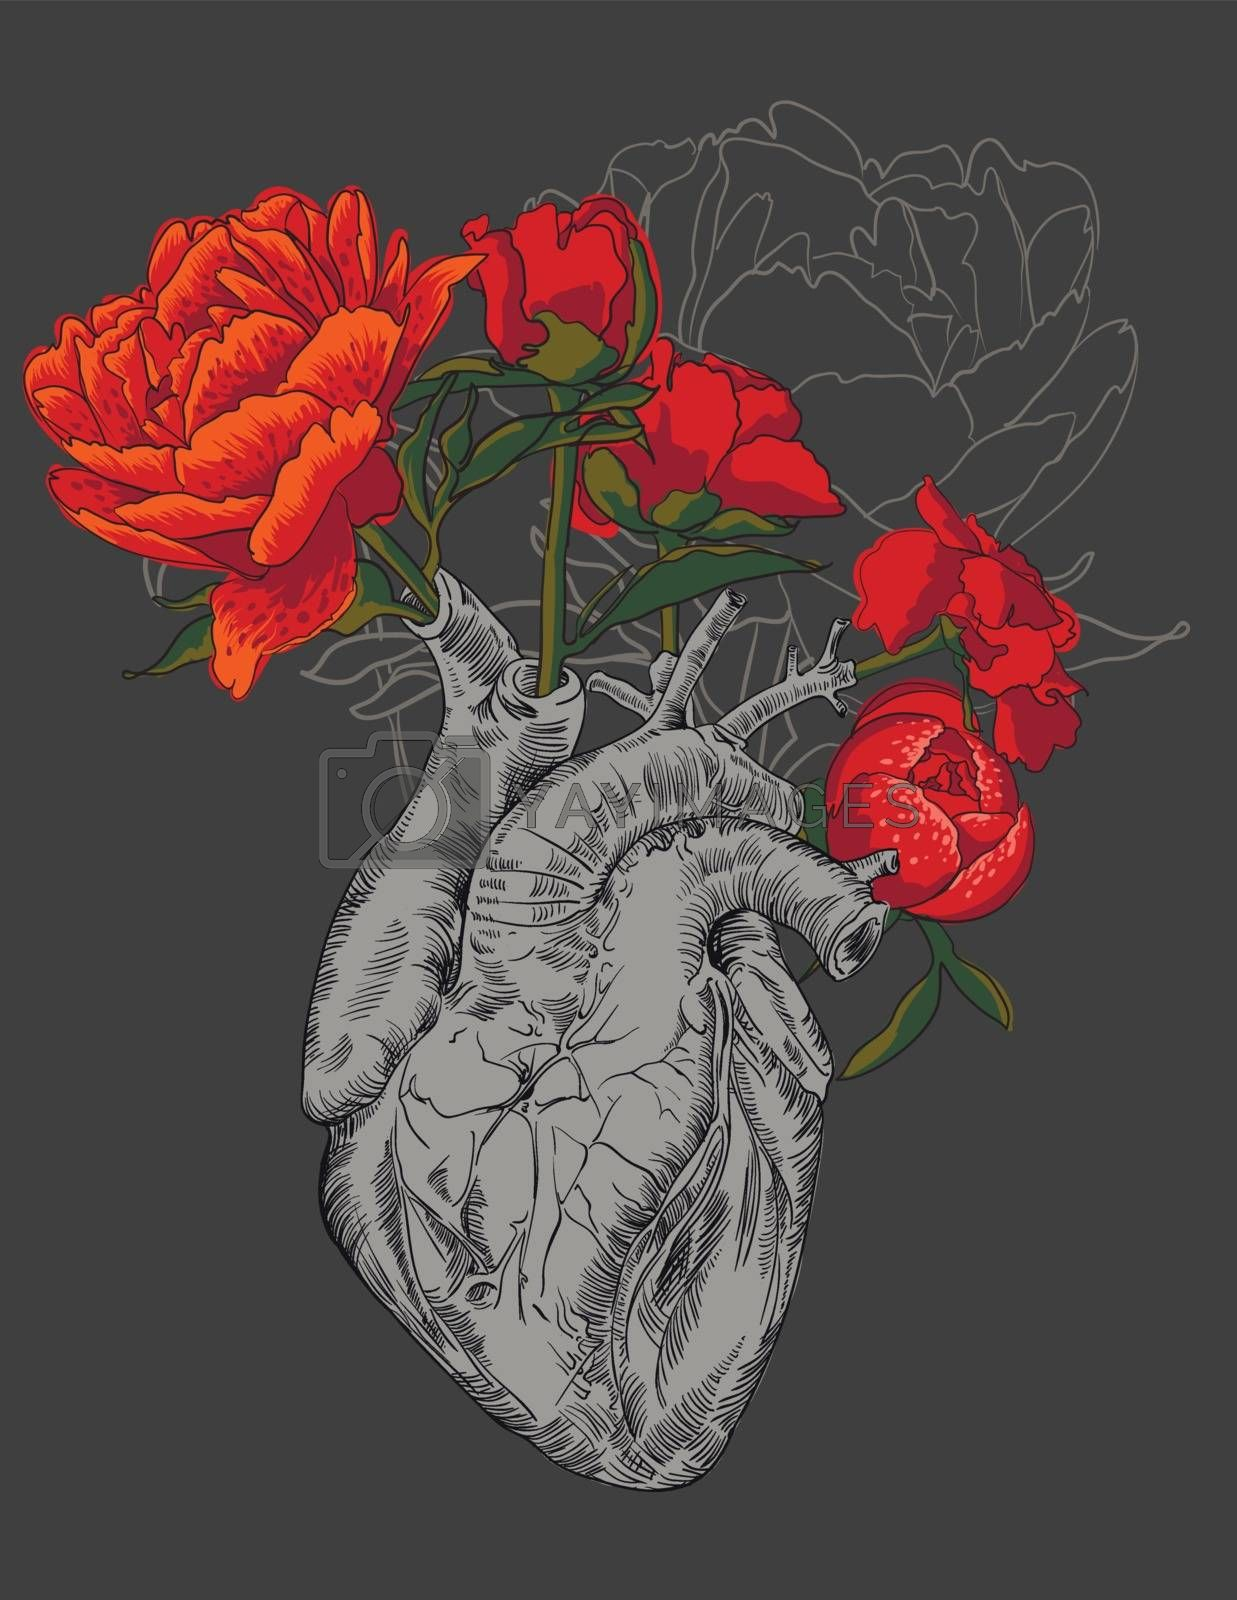 Drawing Human Heart With Flowers Royalty Free Stock Image Stock Photos Royalty Free Images Vectors Footage Yayimages